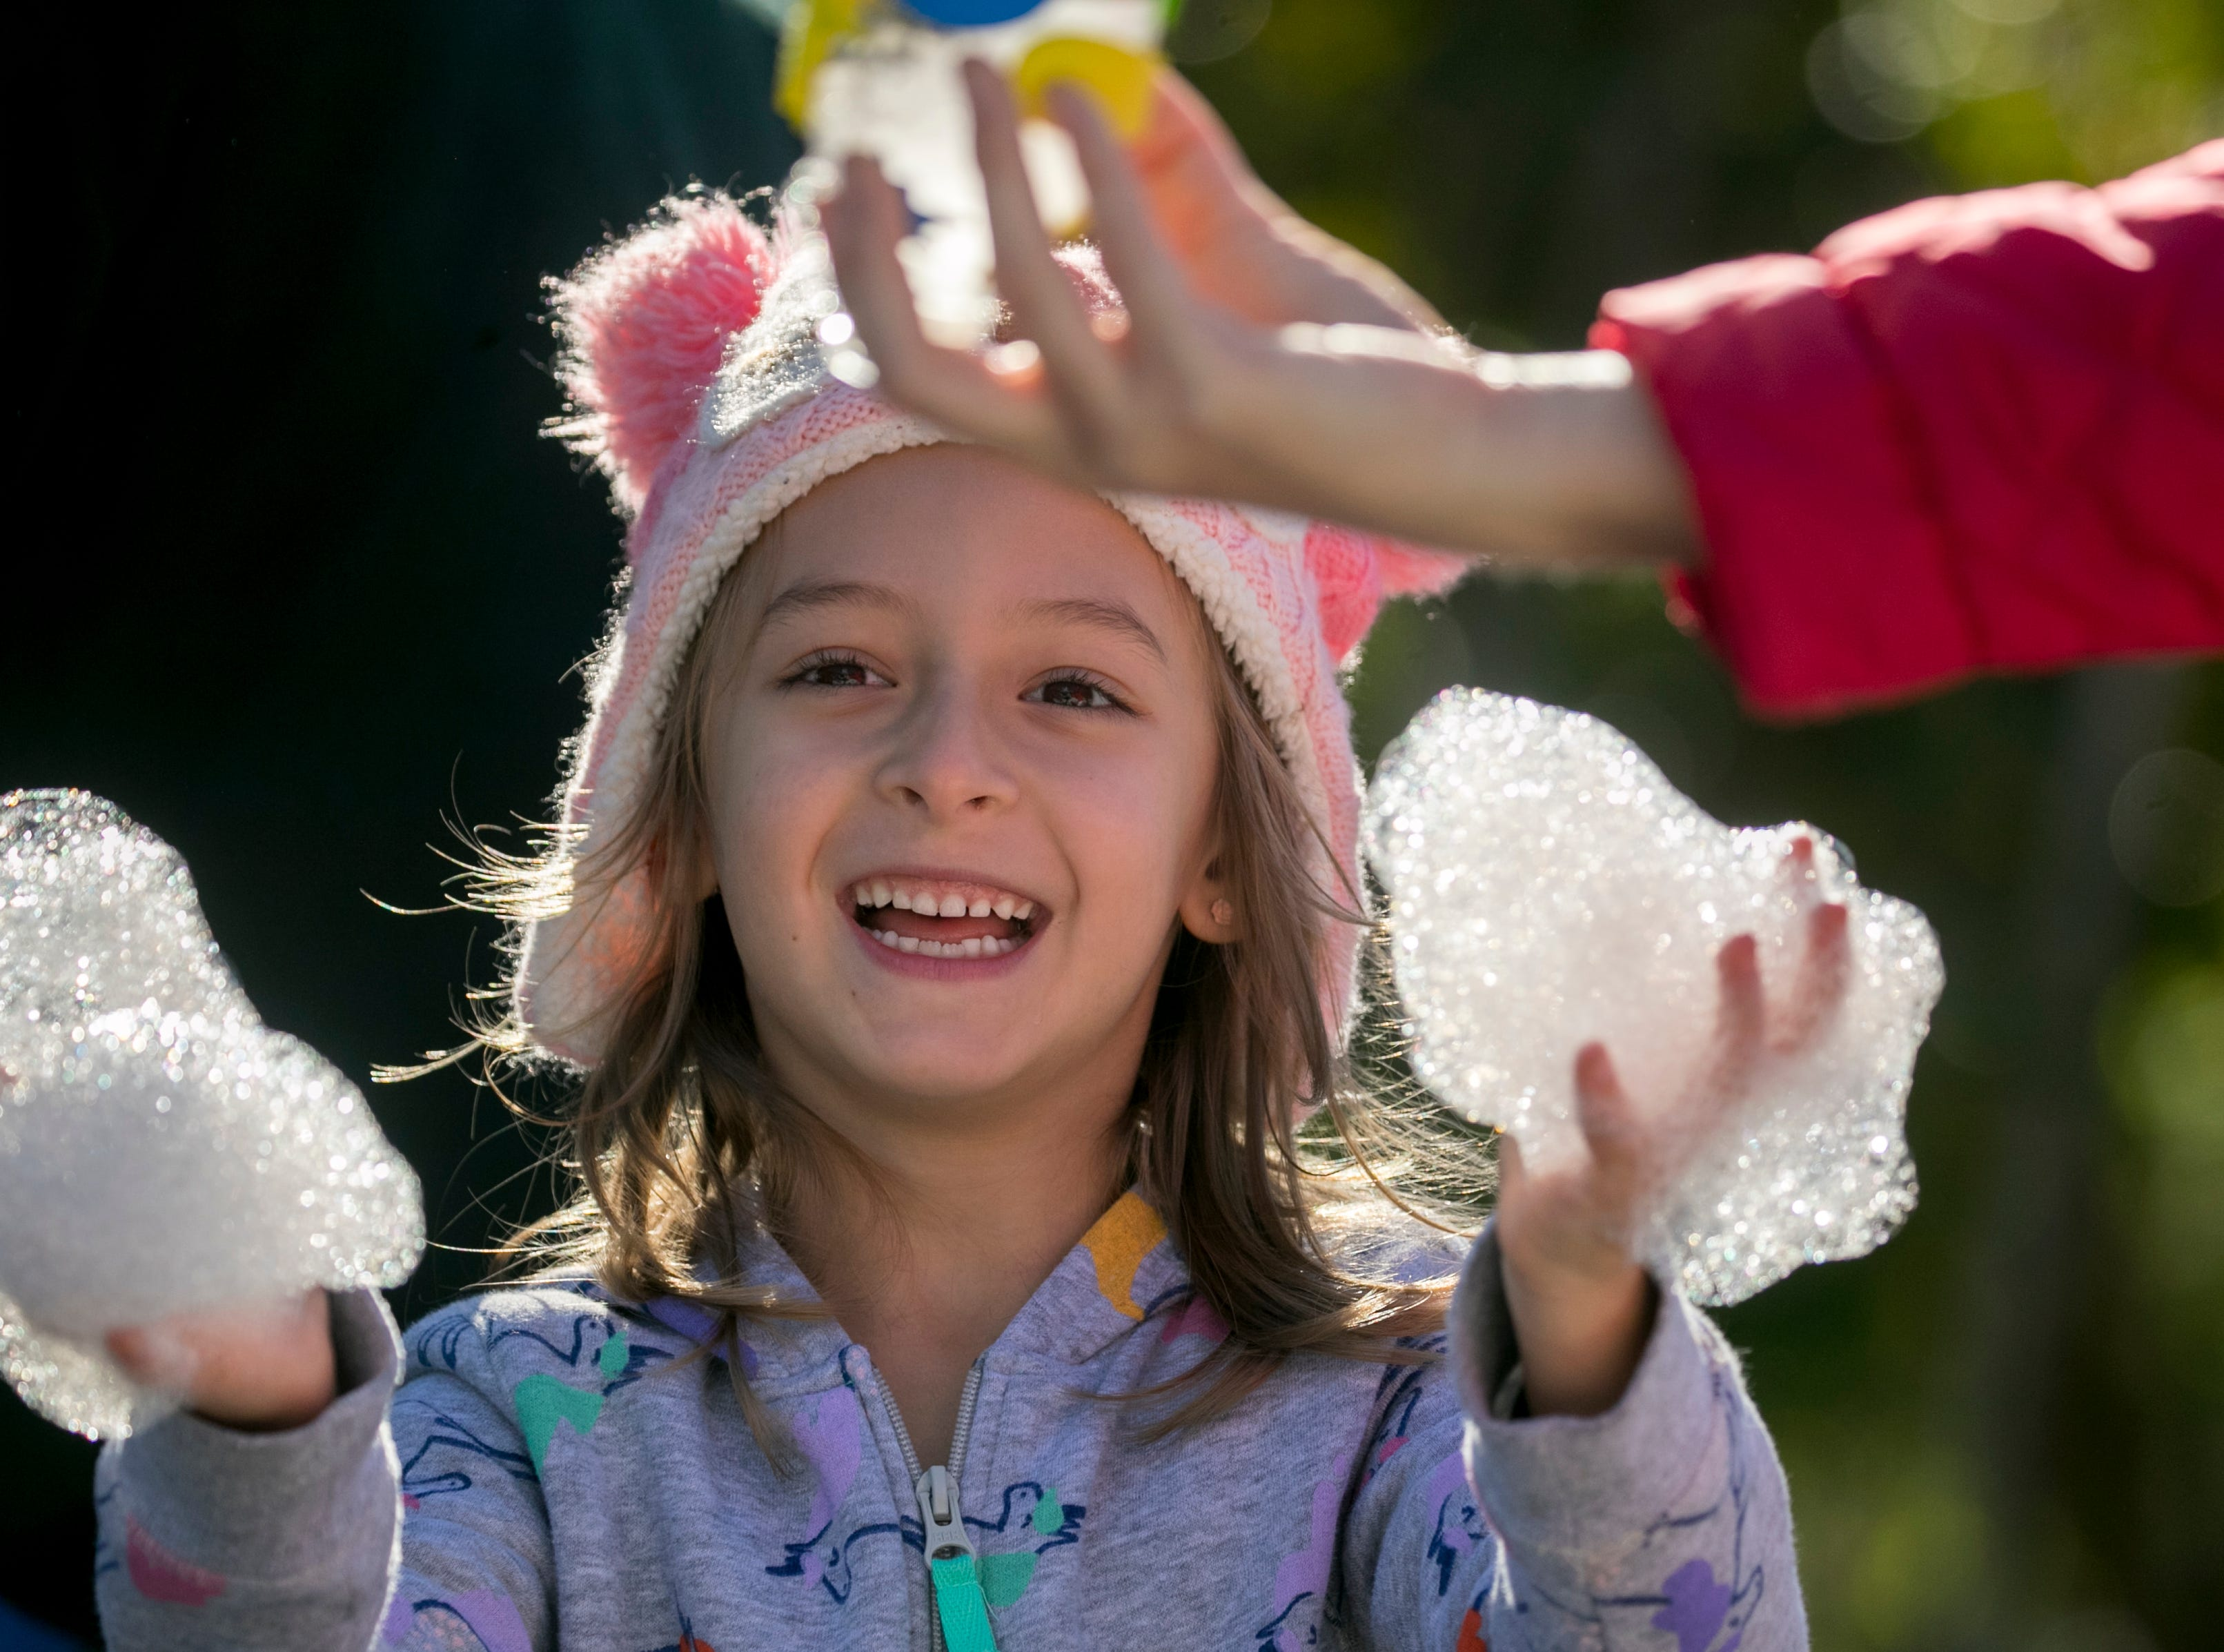 Aviana Panayotti plays with snake bubbles during the monthly Emerging Inventors program on Thursday, January 17, 2019, at the Edison & Ford Winter Estates in Fort Myers. This month's program was called Bouncing Bubbles. The next program, which is for children 5 and younger, is February 21 at 9:30 am, and is called is LEGO Art and Engineering.